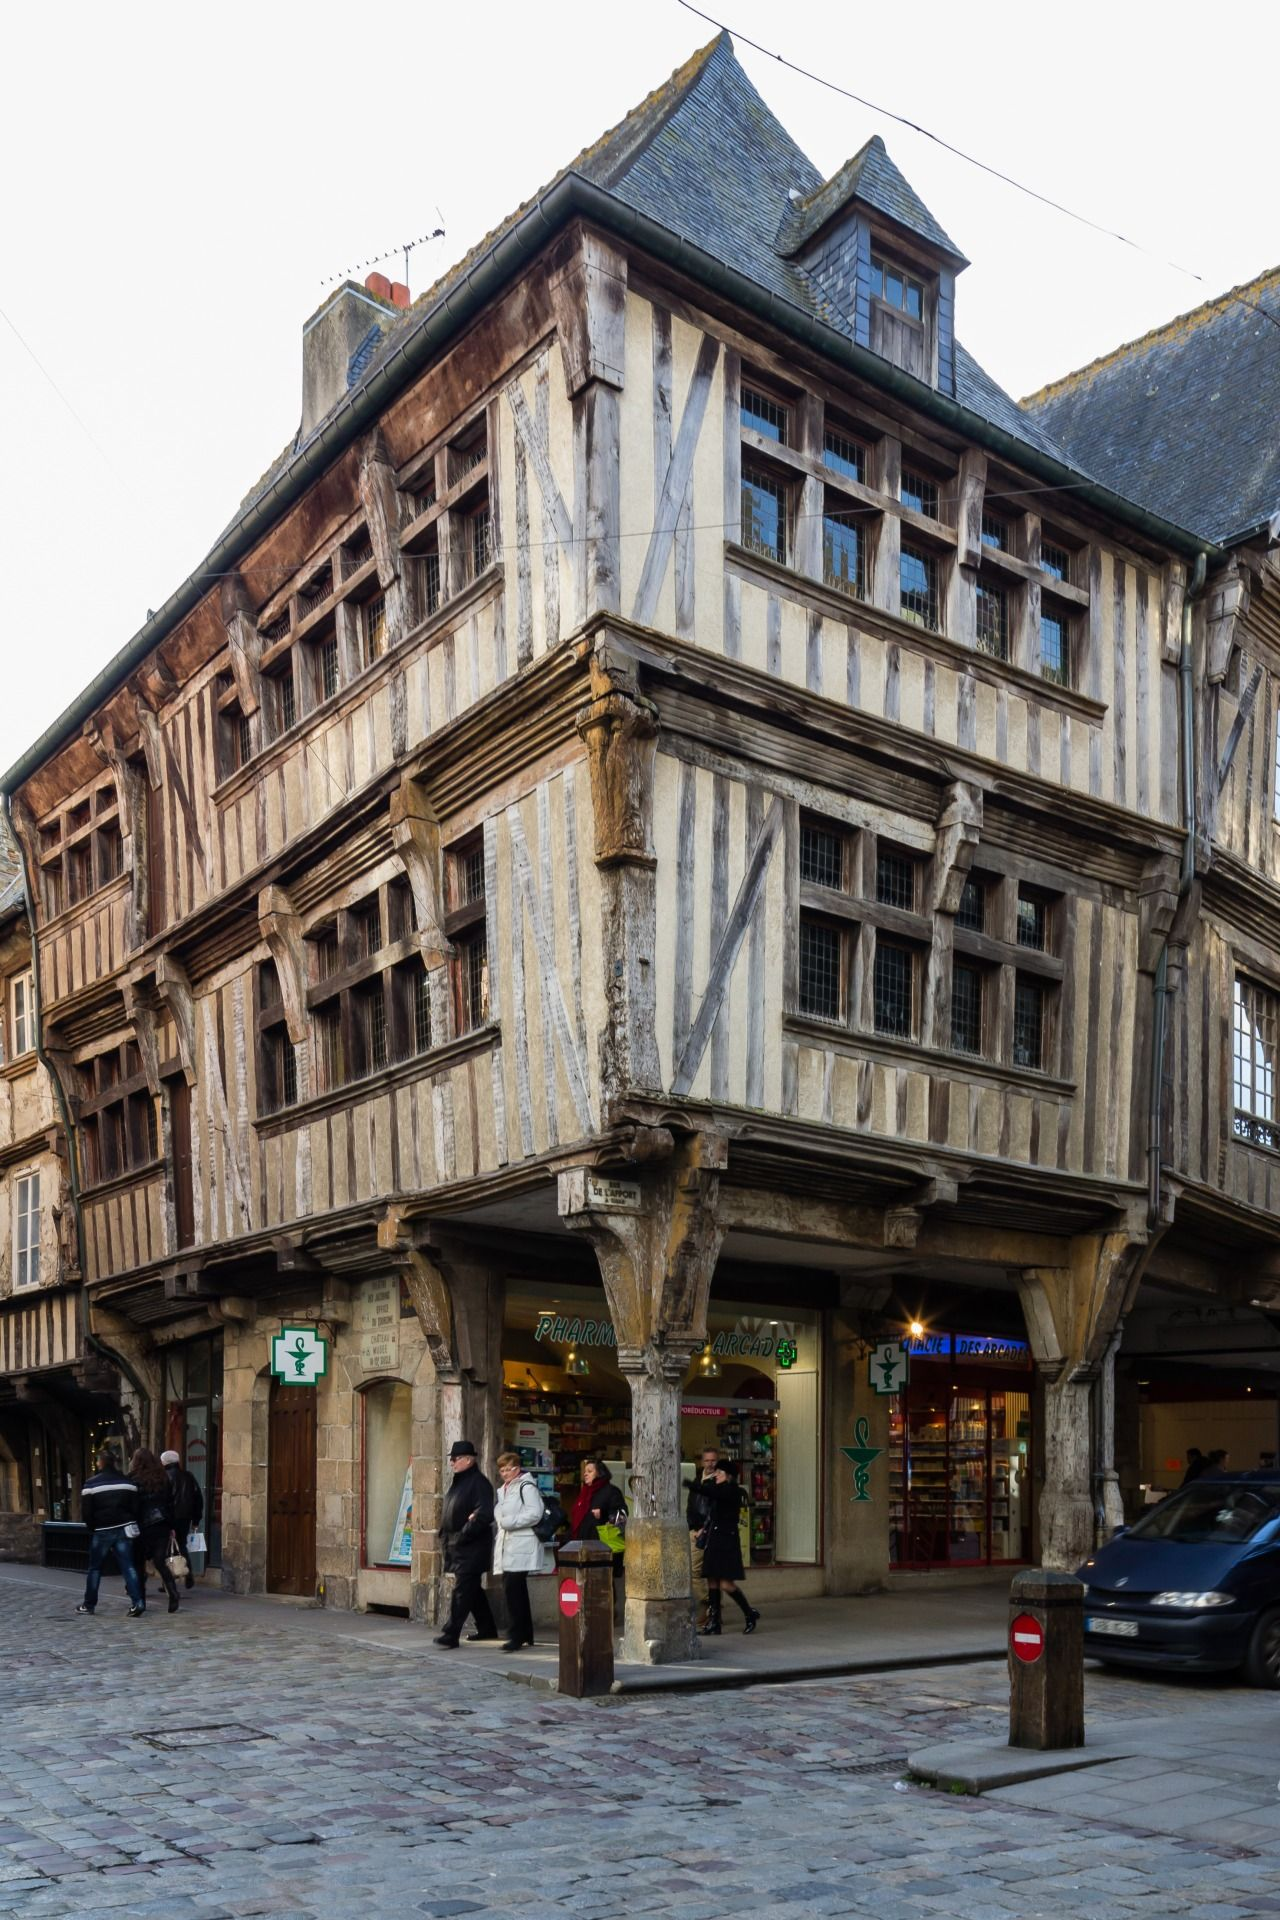 Brilliant 12 13Th C Timber Framed House In Dinan In Brittany France Beutiful Home Inspiration Papxelindsey Bellcom